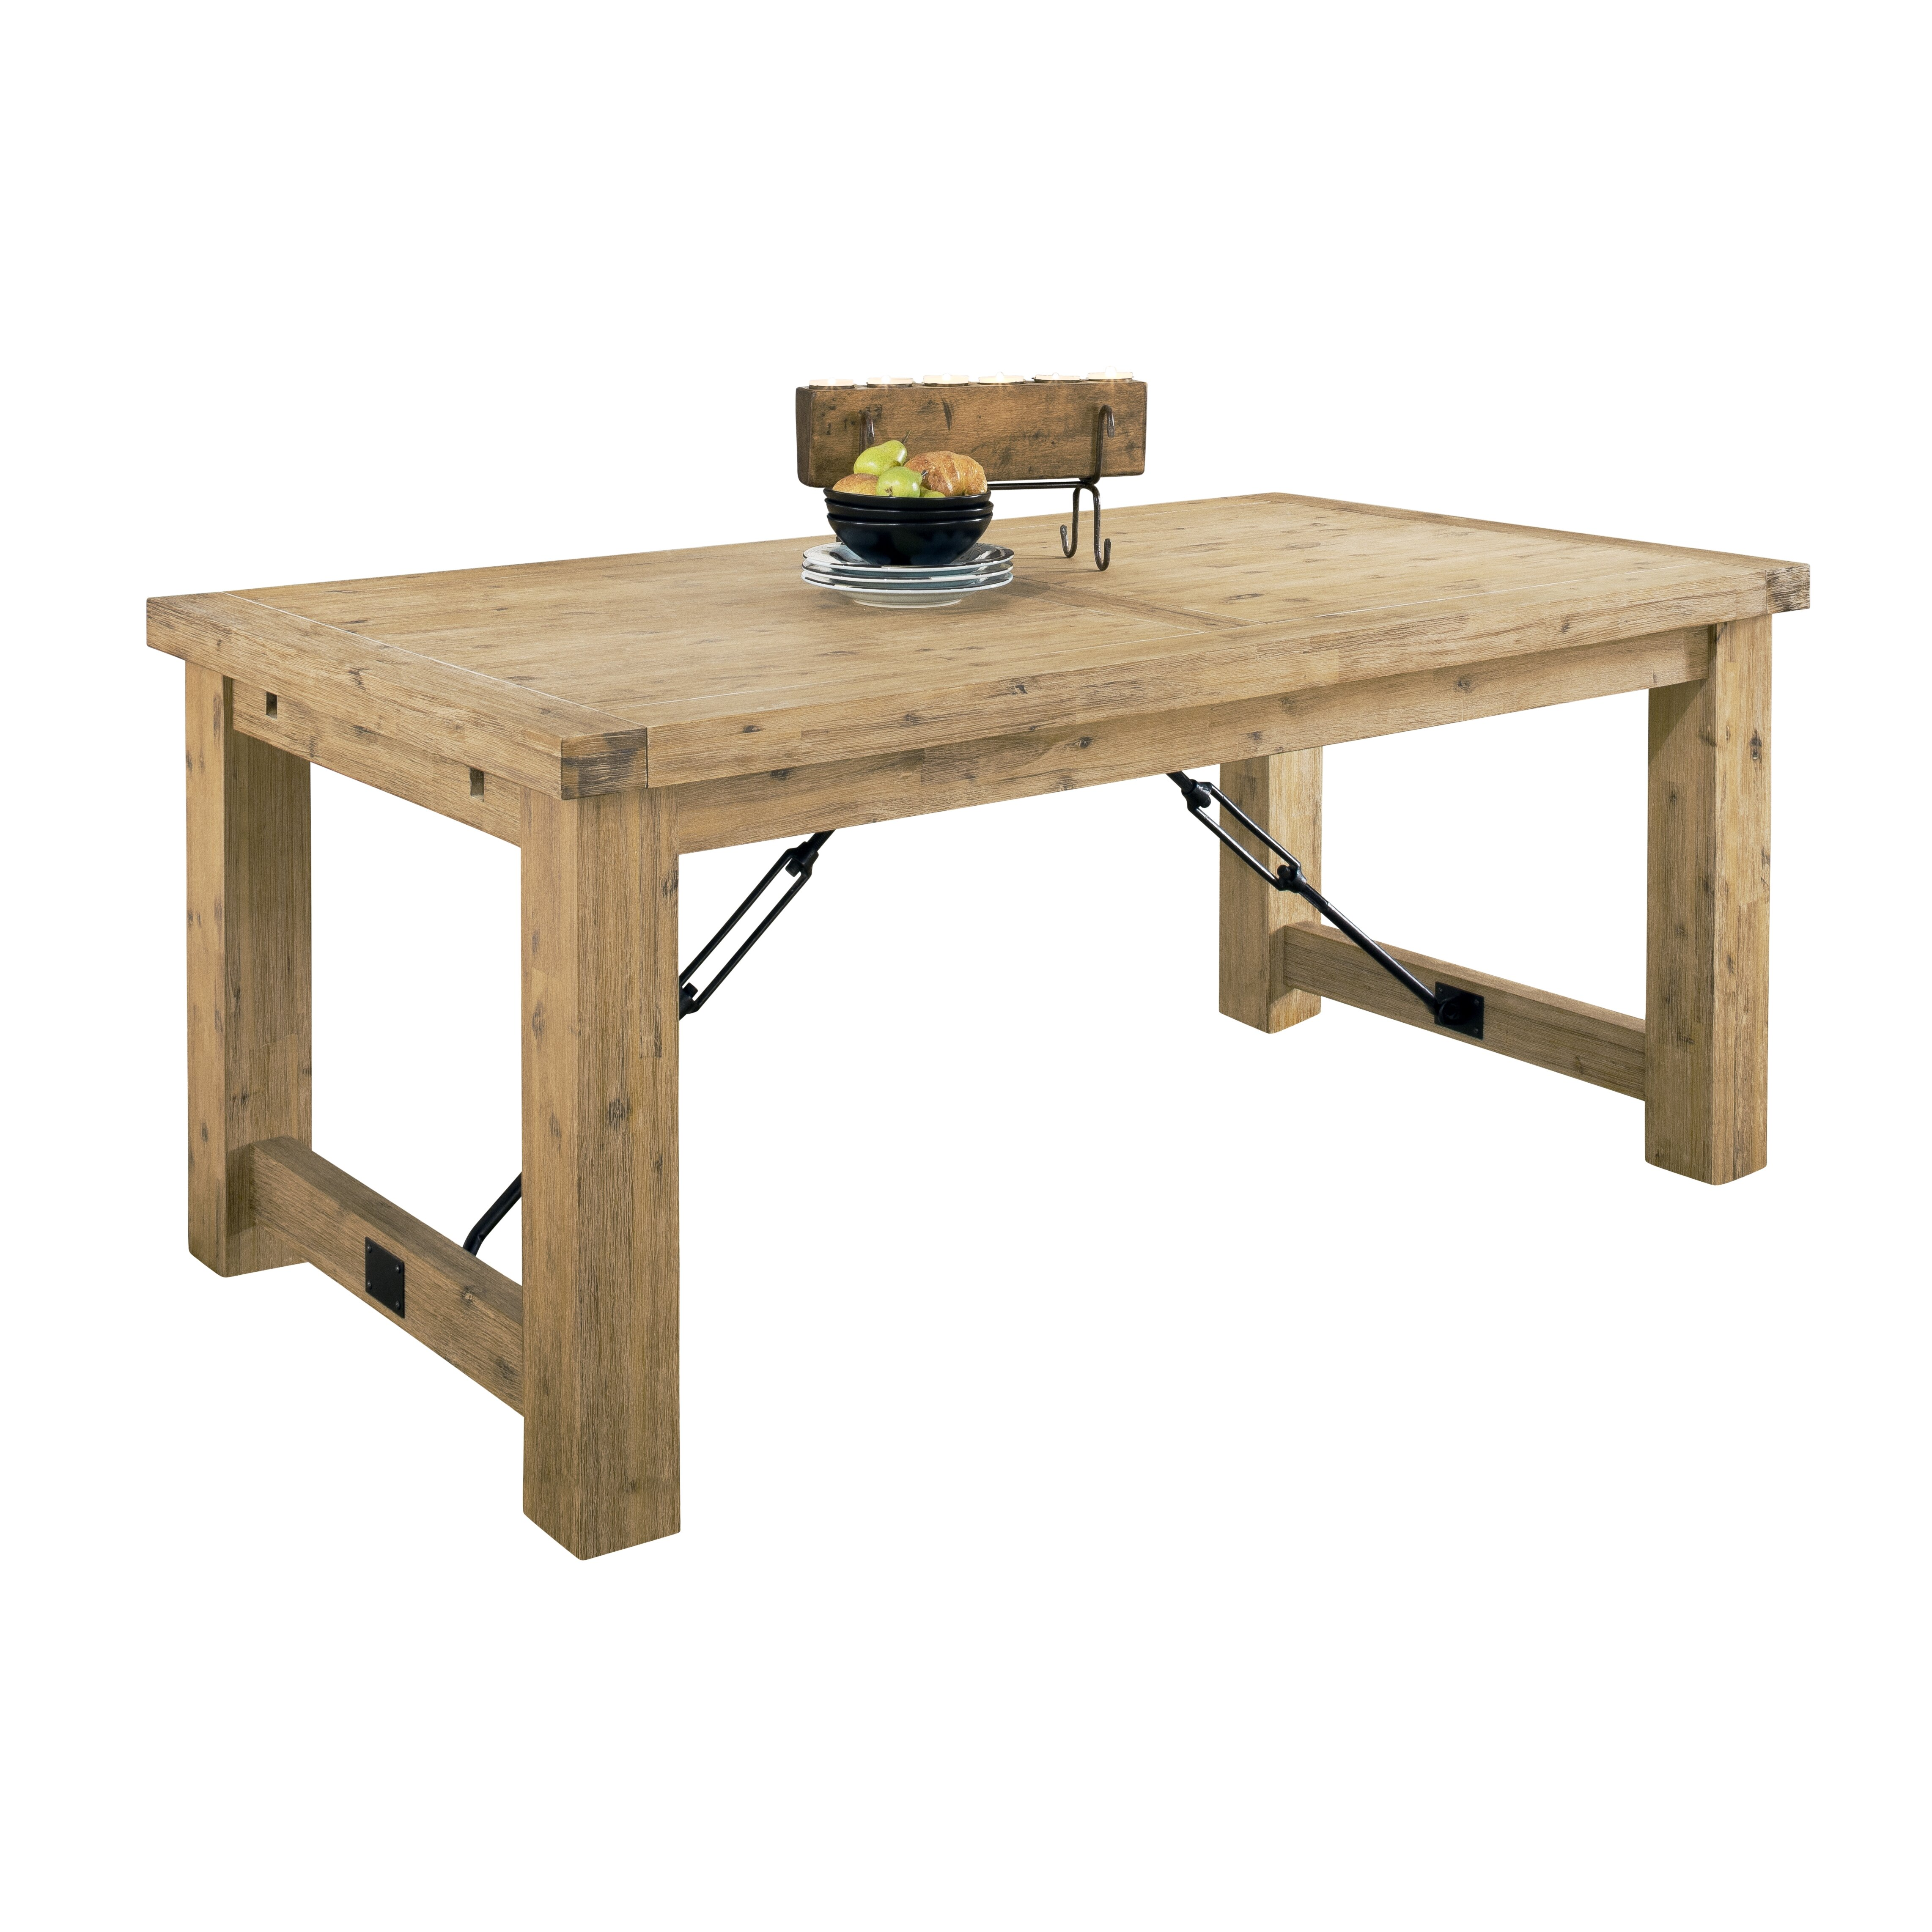 Modus autumn extendable dining table reviews wayfair for Extendable dining table